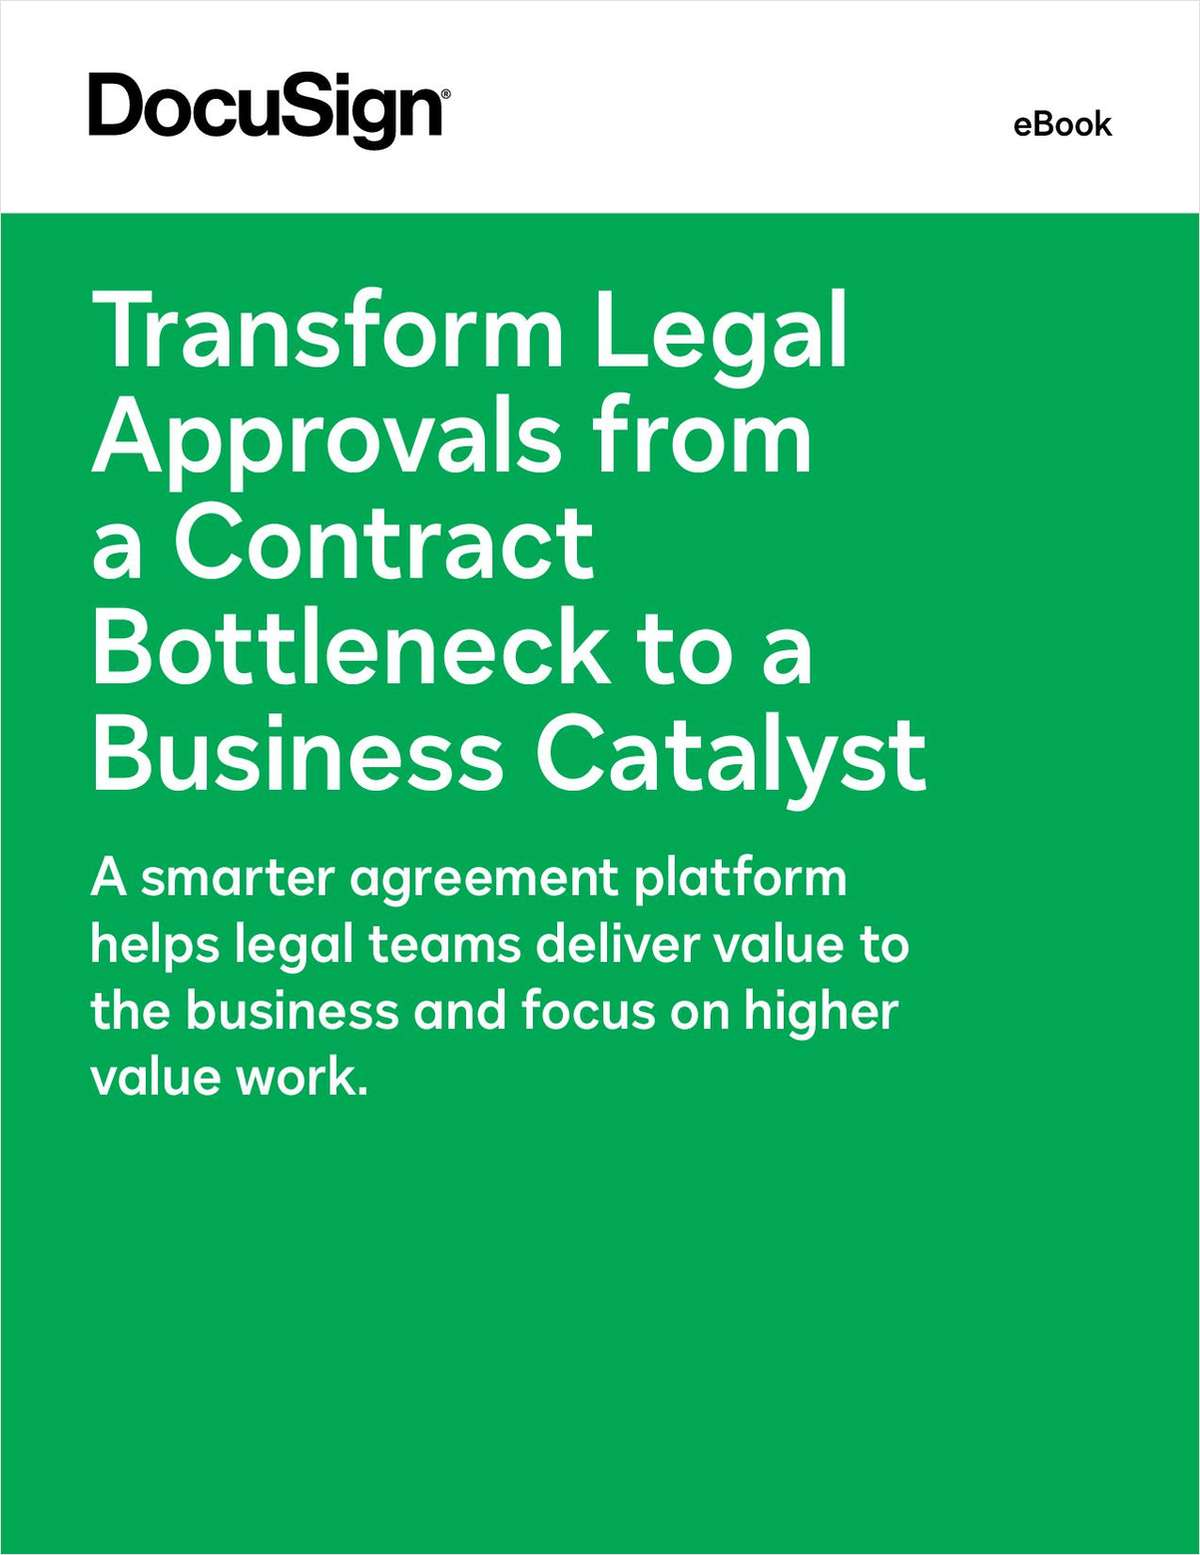 The longer it takes to sign a contract, the longer it takes to receive revenue from the deal. Discover five ways that in-house legal teams can streamline contract work to enable a faster time to revenue.